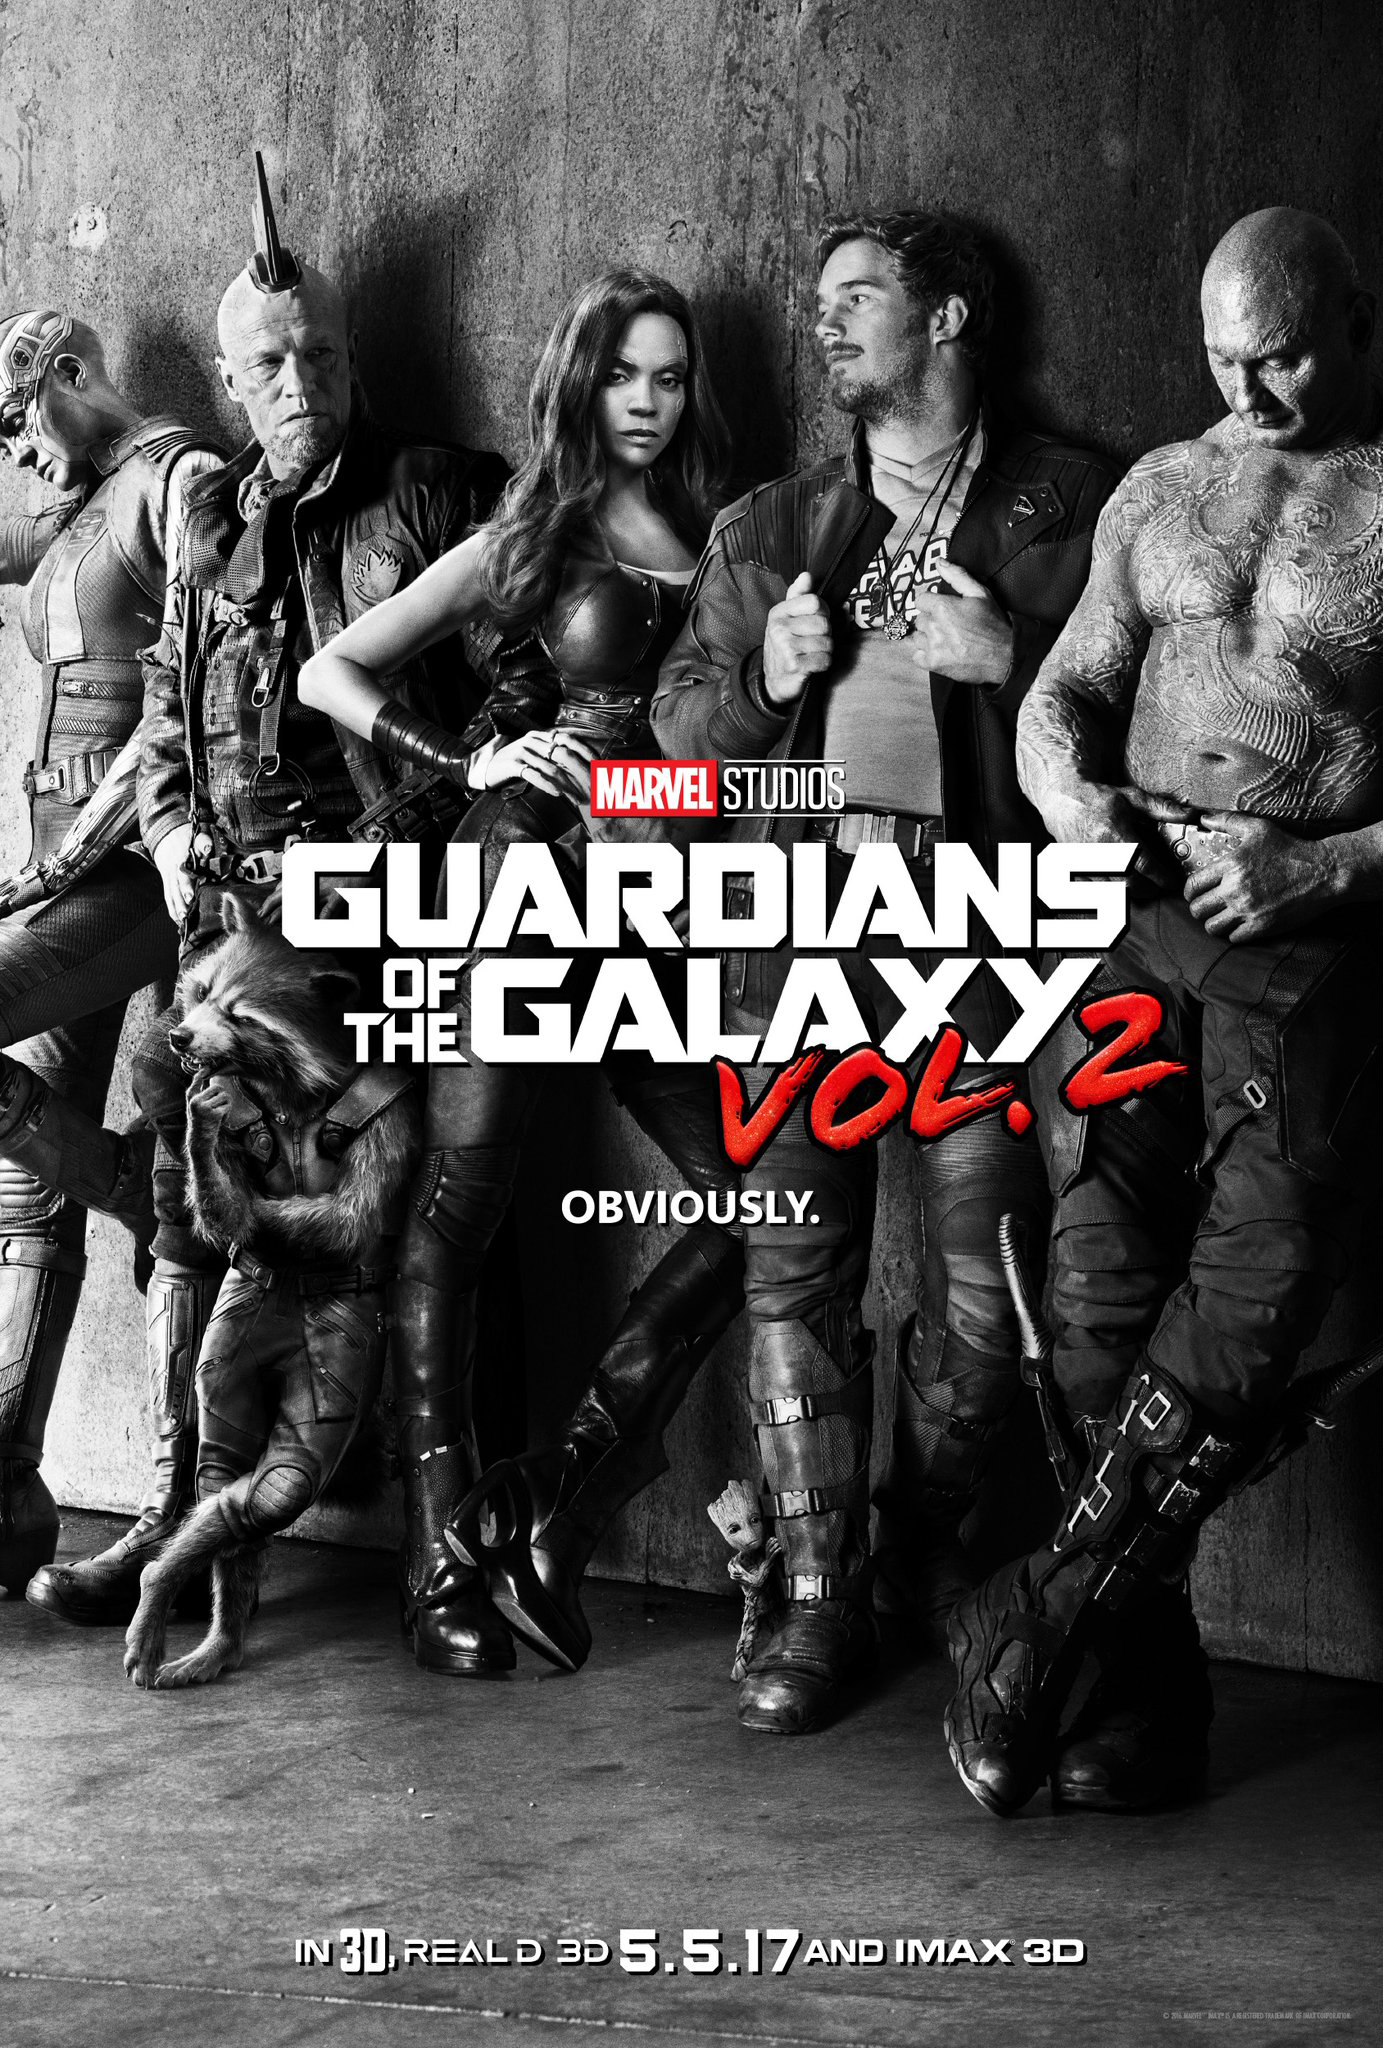 Guardians of the Galaxy Poster - Embed